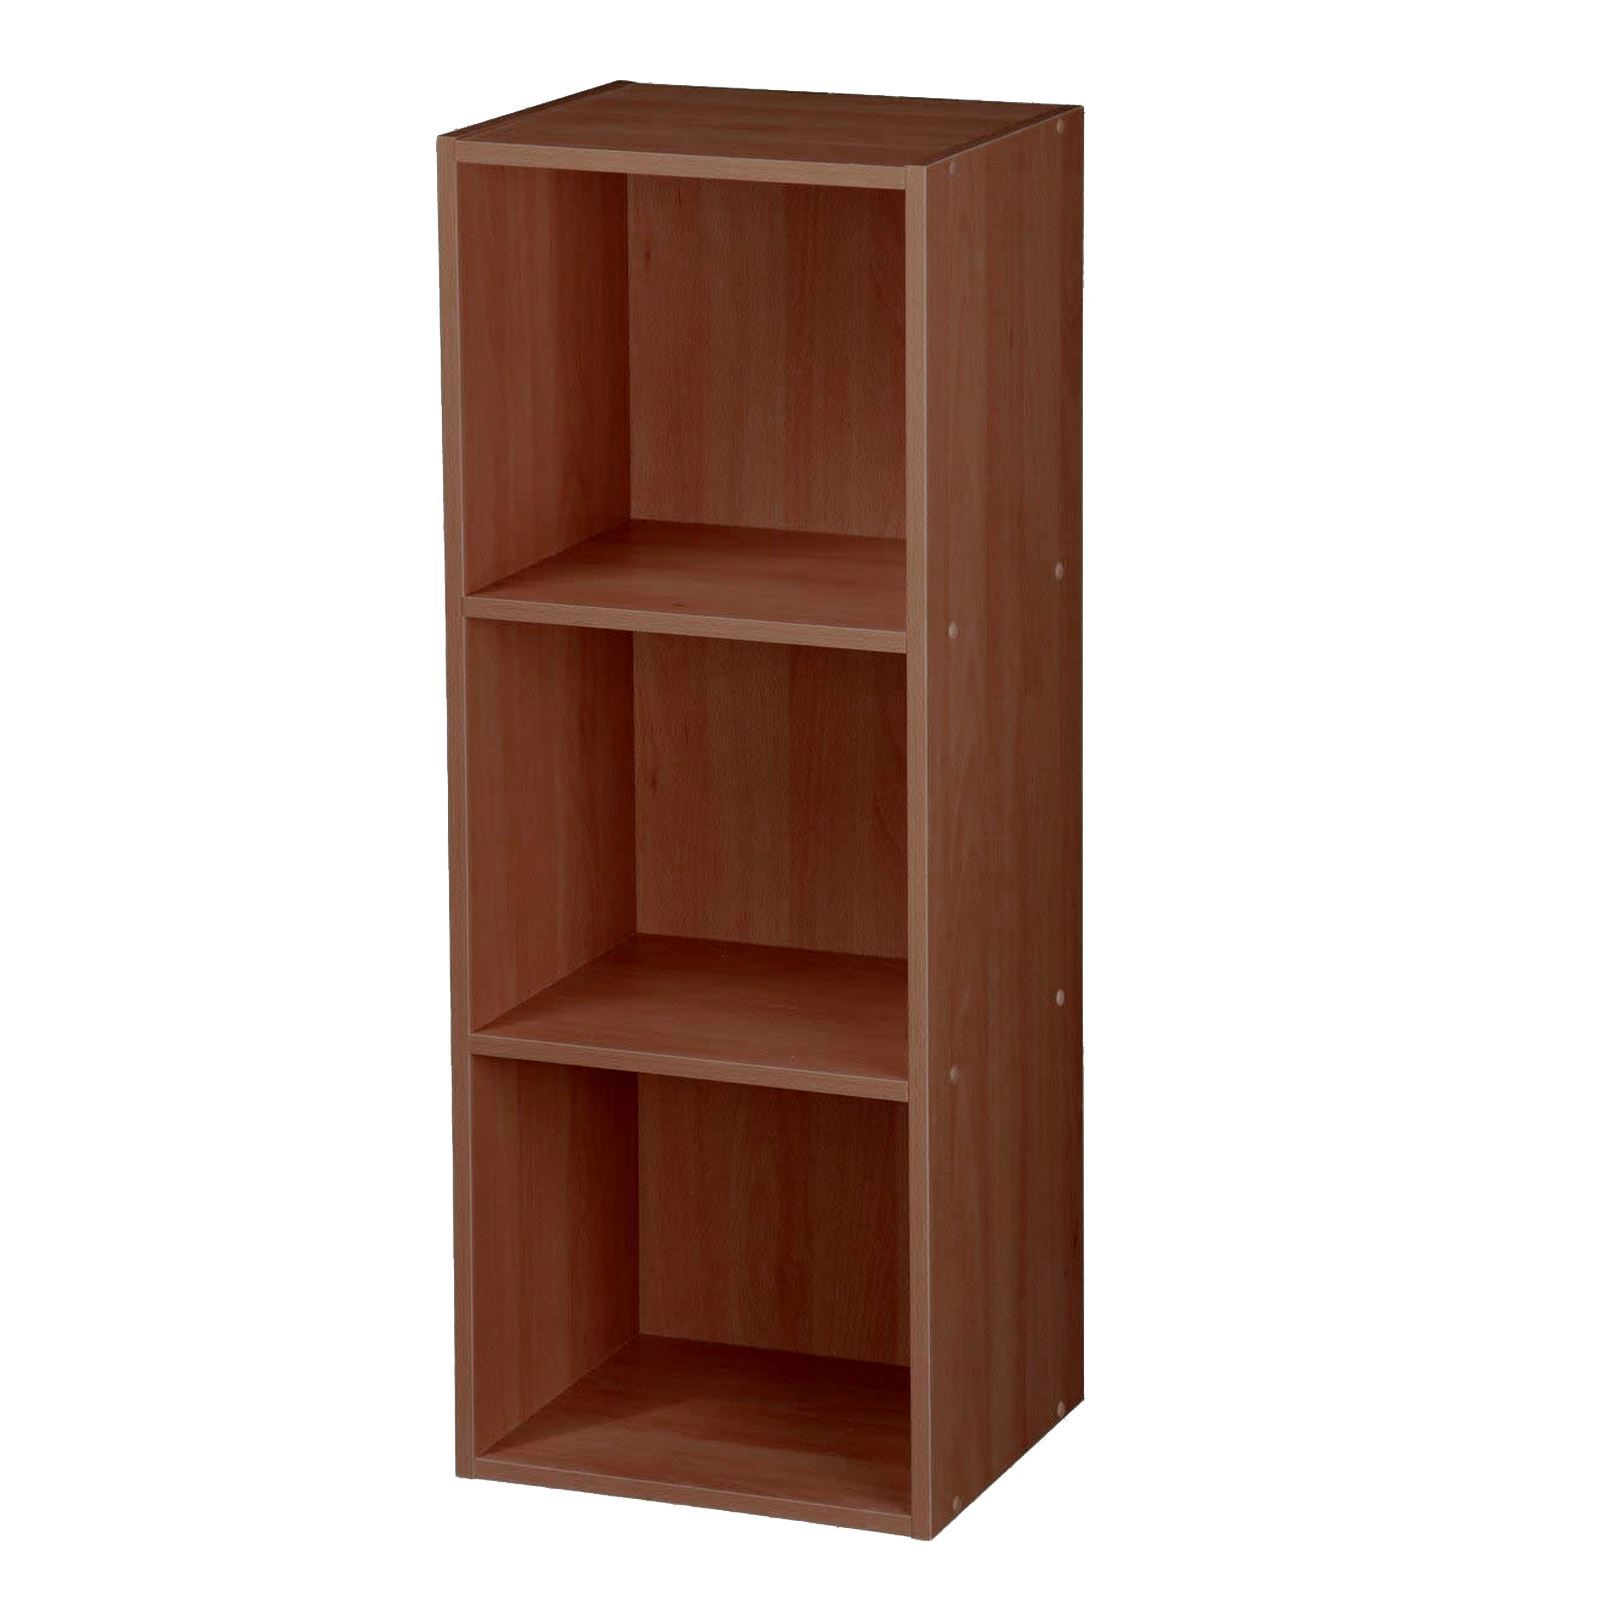 Wooden Cube 2 3 4 Tier Storage Unit Strong Bookcase